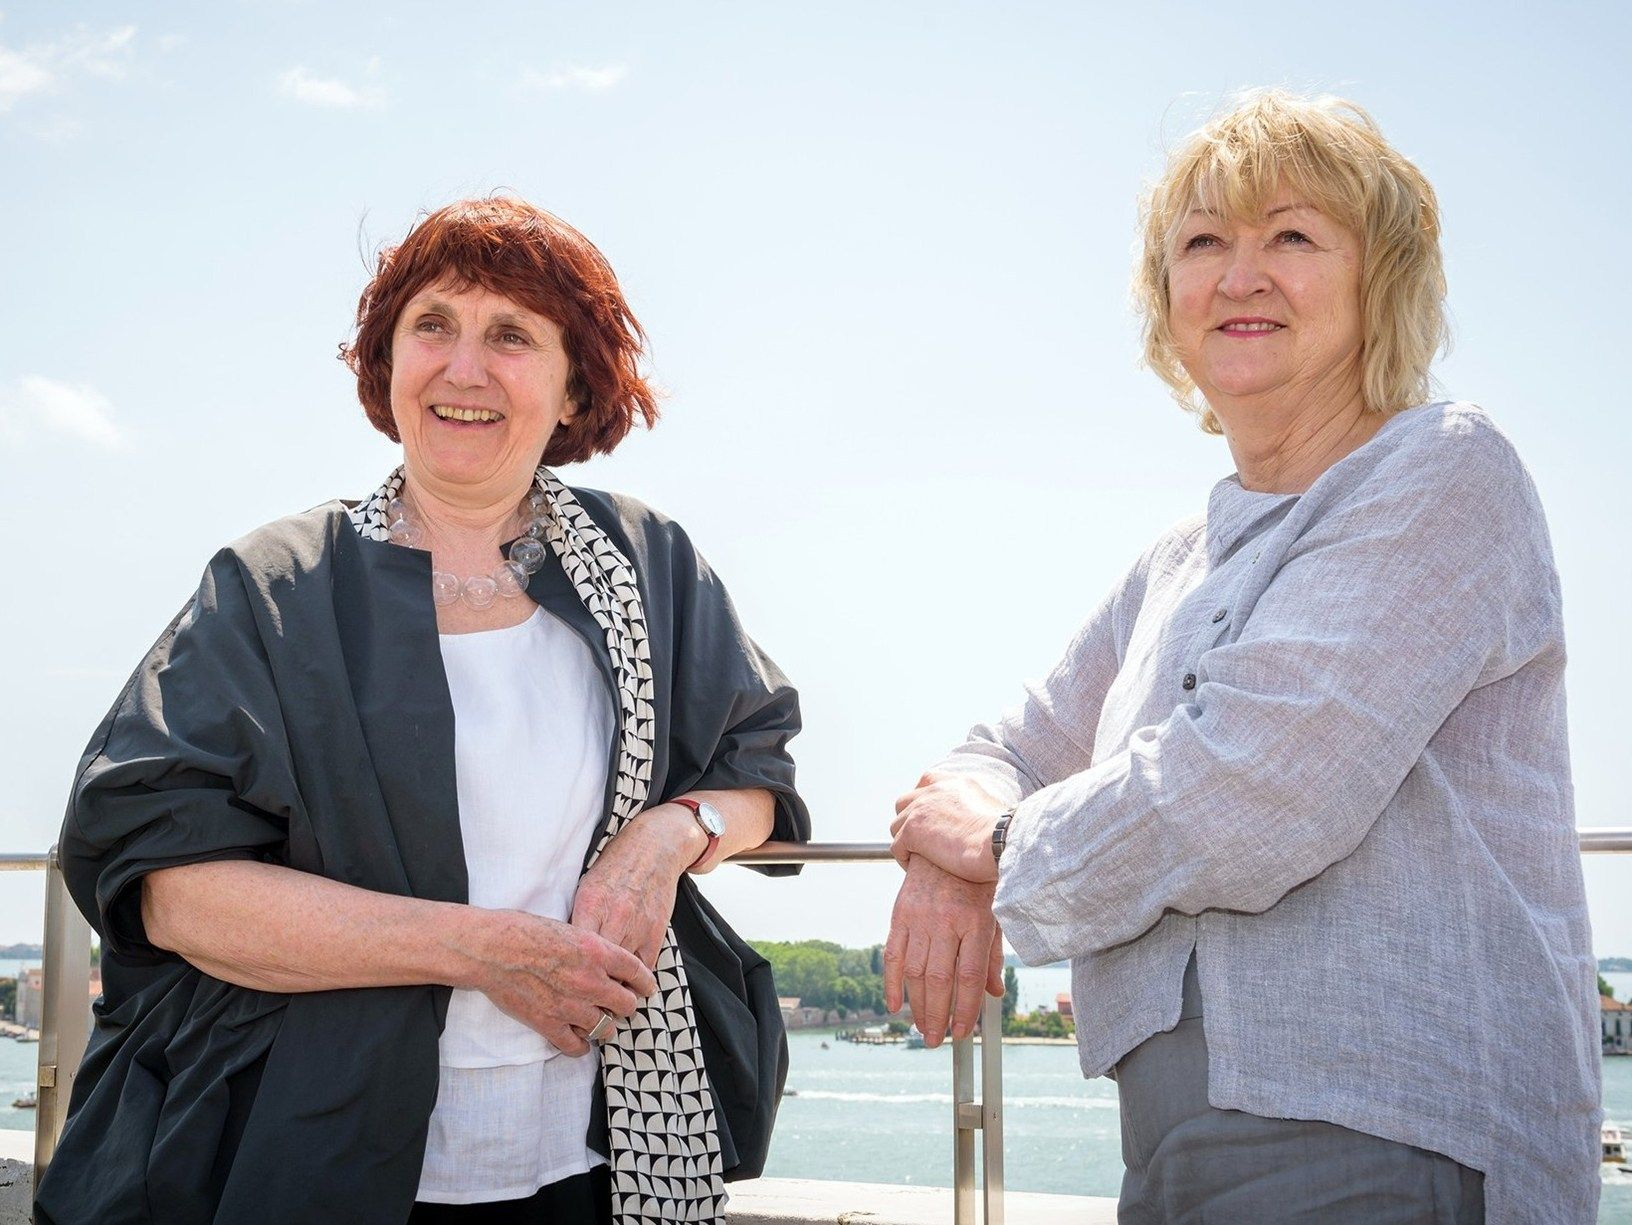 Yvonne Farrell, Shelley McNamara_Photo by Andrea Avezzu'_Courtesy of La Biennale di Venezia